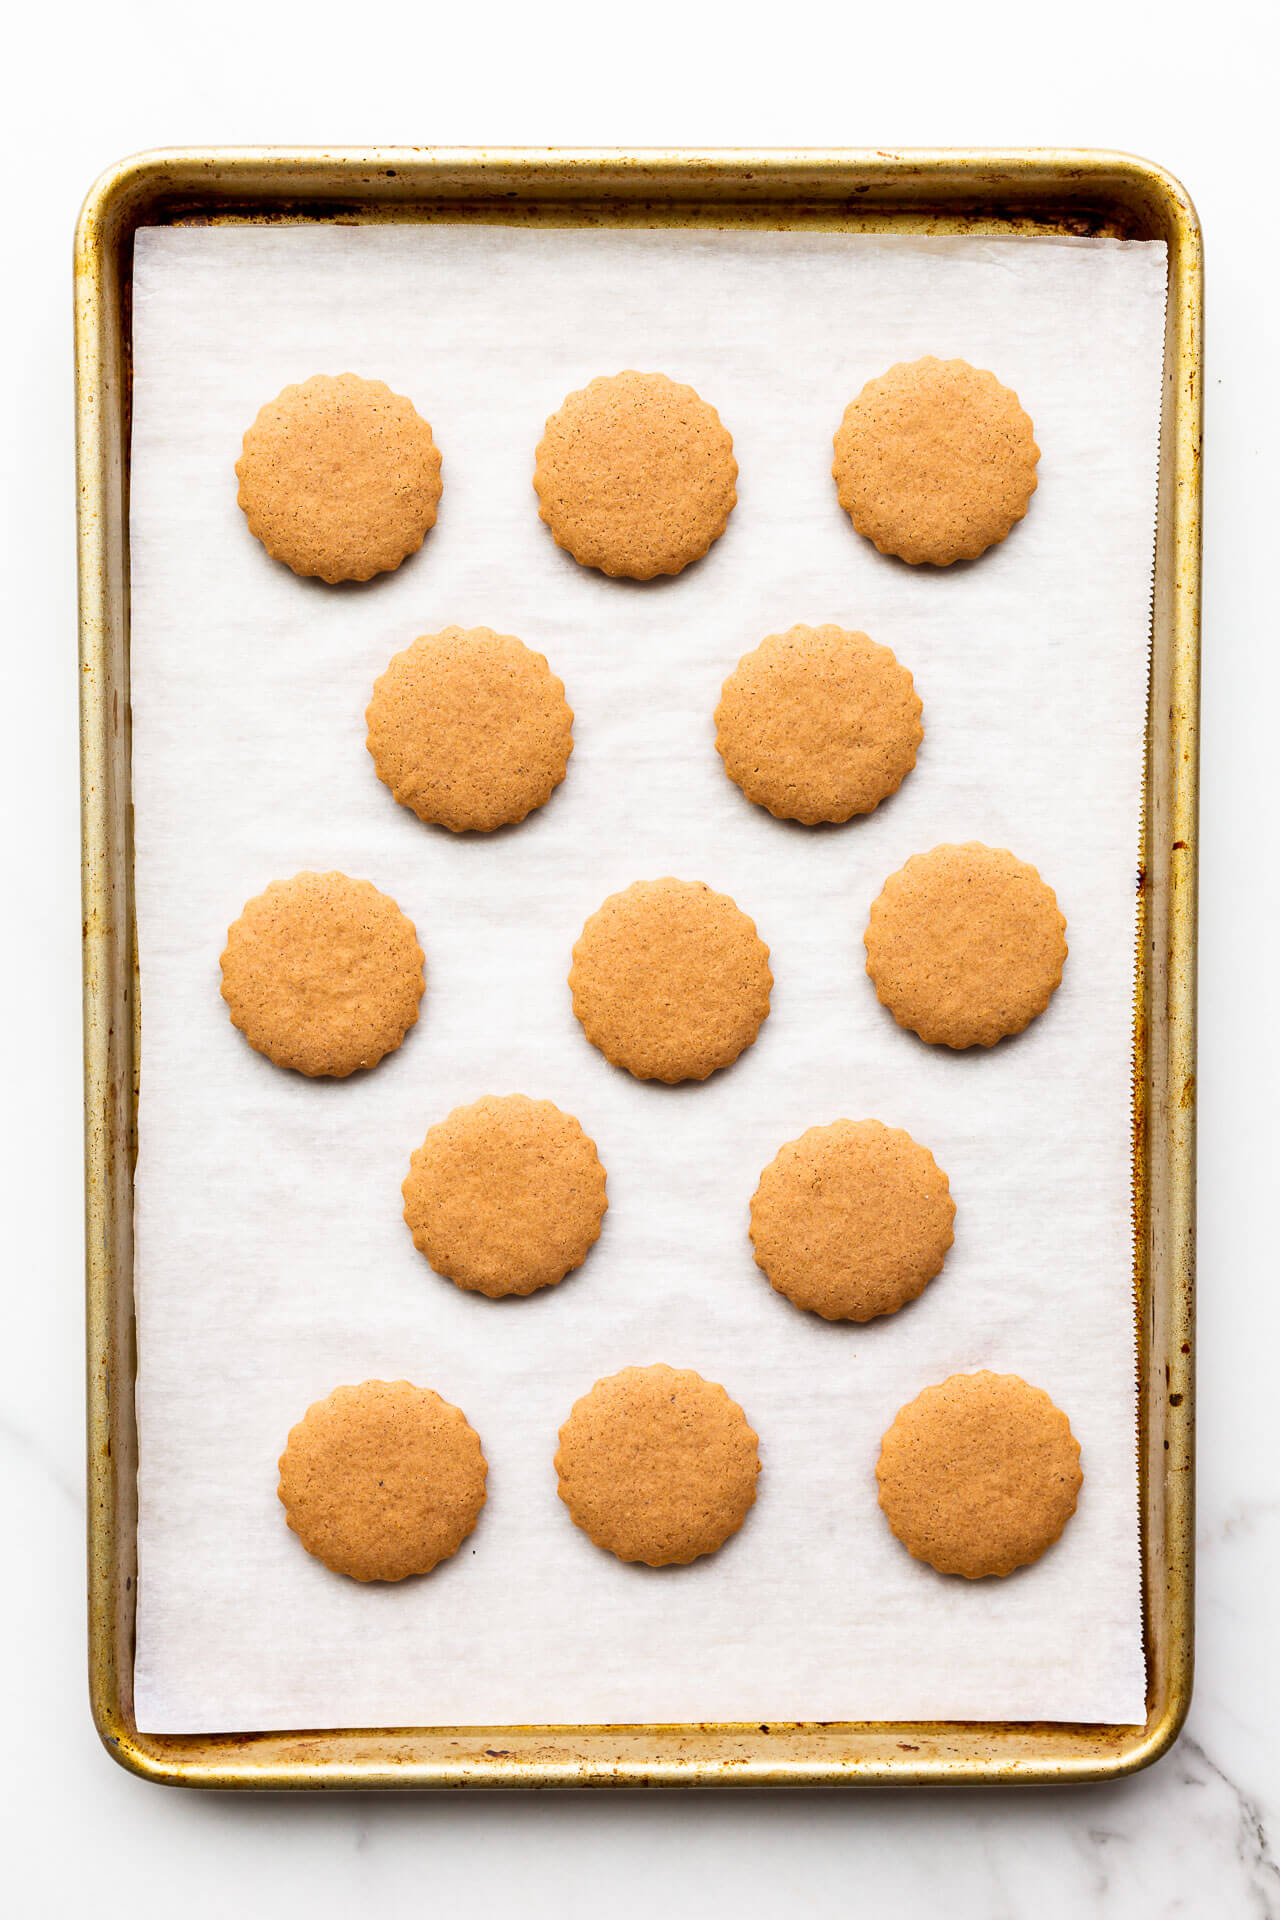 Freshly baked German gingerbread cookies on a parchment lined sheet pan.